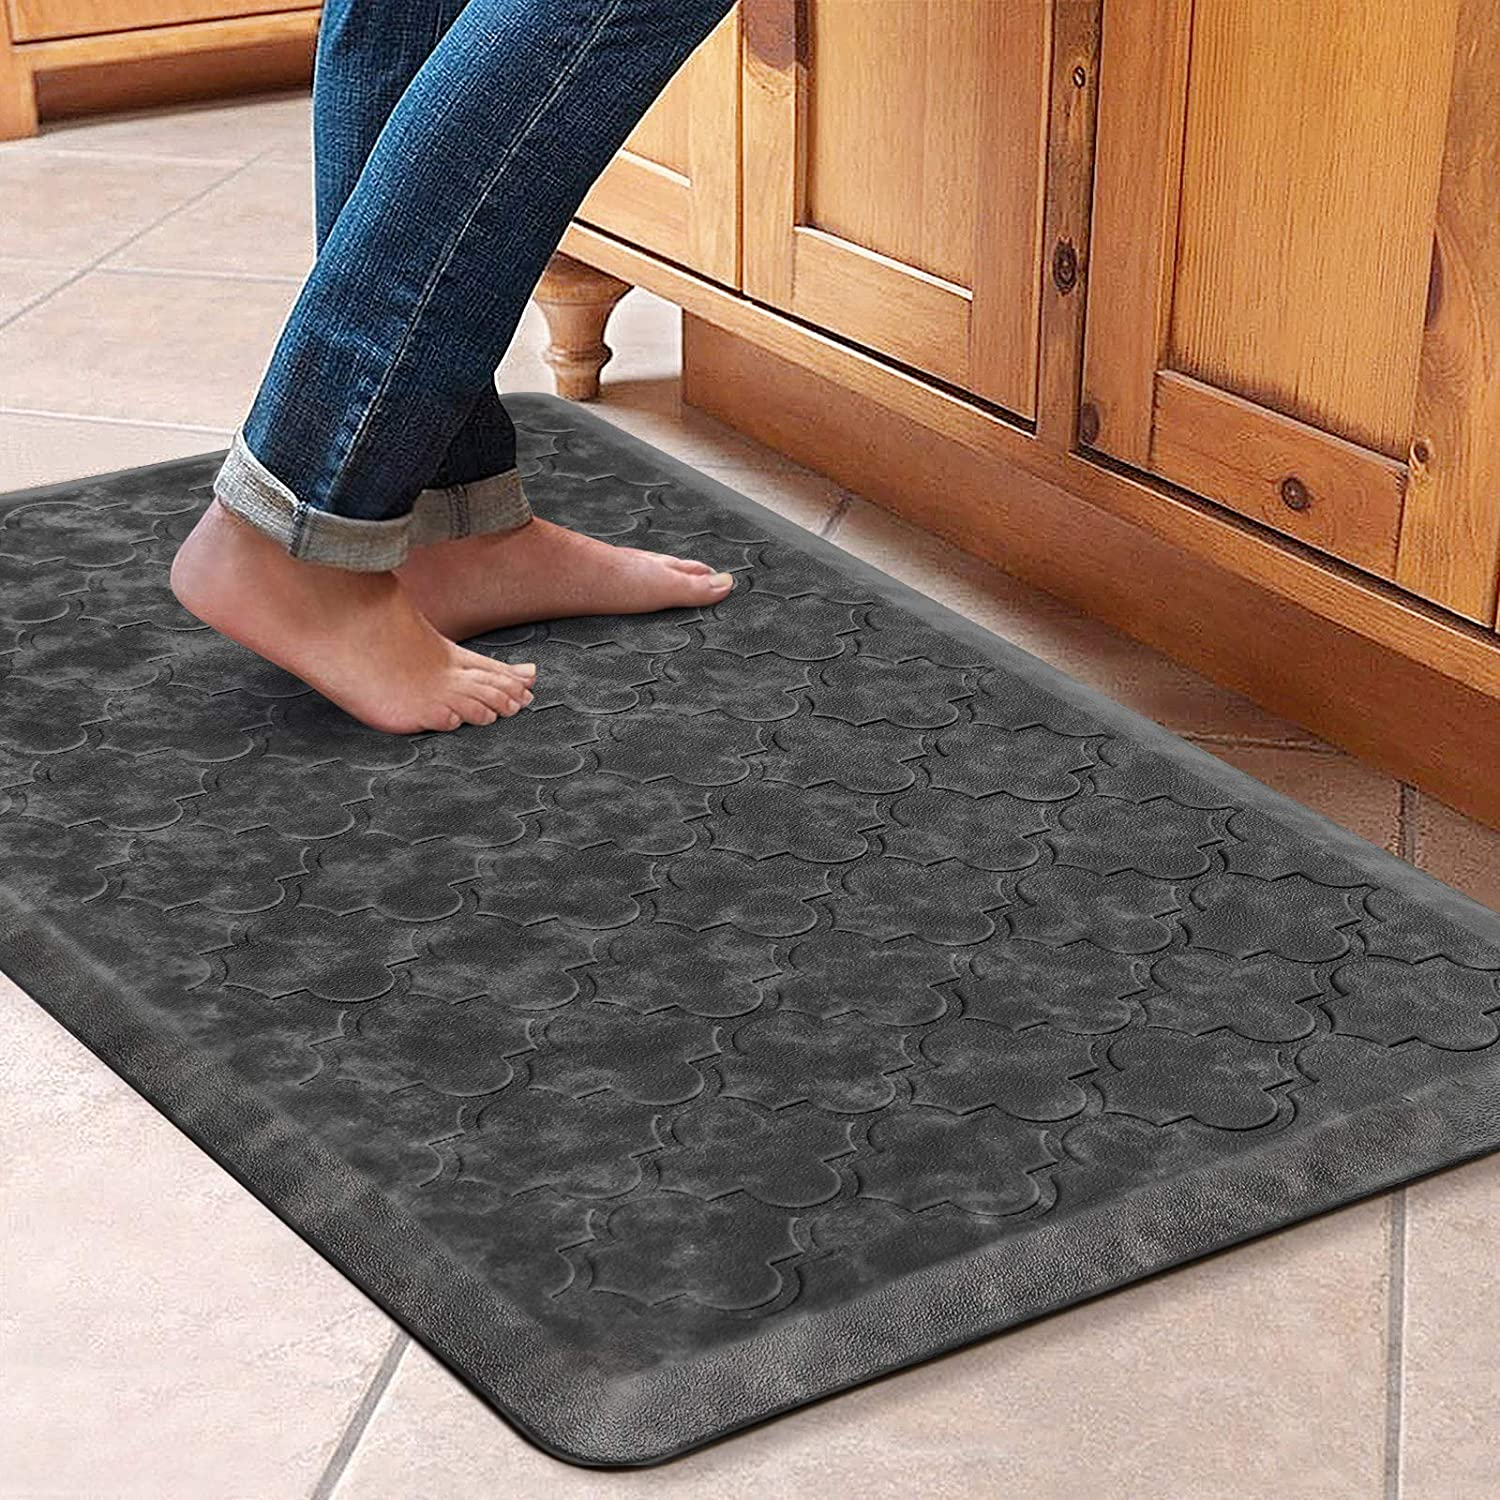 "WiseLife Kitchen Mat Cushioned Anti Fatigue Floor Mat,17.3""x28"", Thick Non Slip Waterproof Kitchen Rugs and Mats,Heavy Duty PVC Foam Standing Mat for Kitchen,Floor,Home,Office,Desk,Sink,Laundry, Grey: Kitchen & Dining"